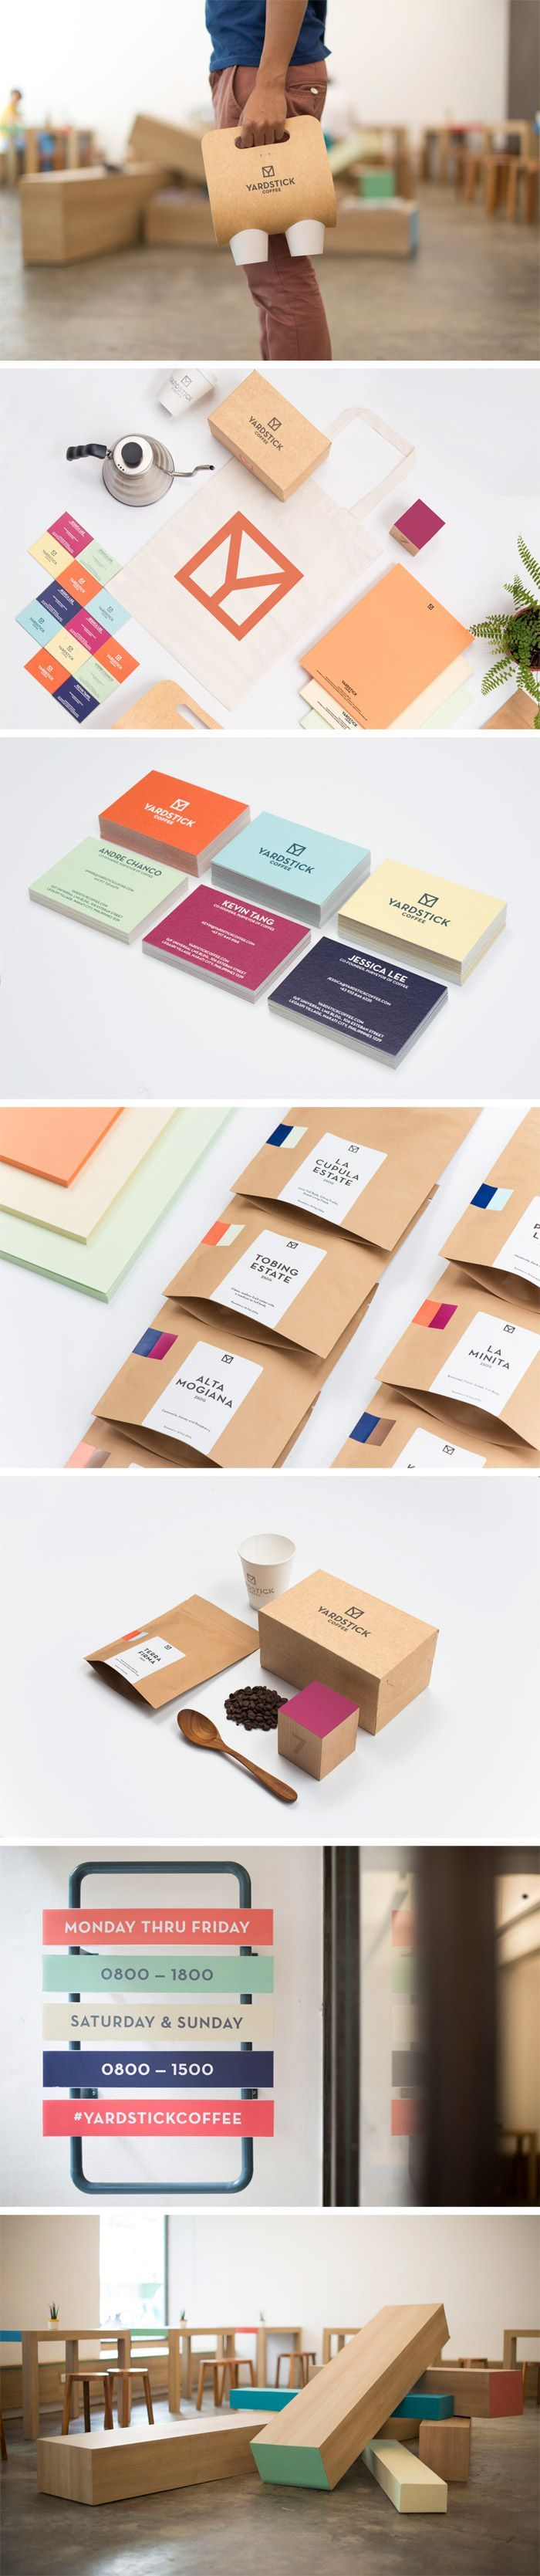 Yardstick Coffee (Branding)